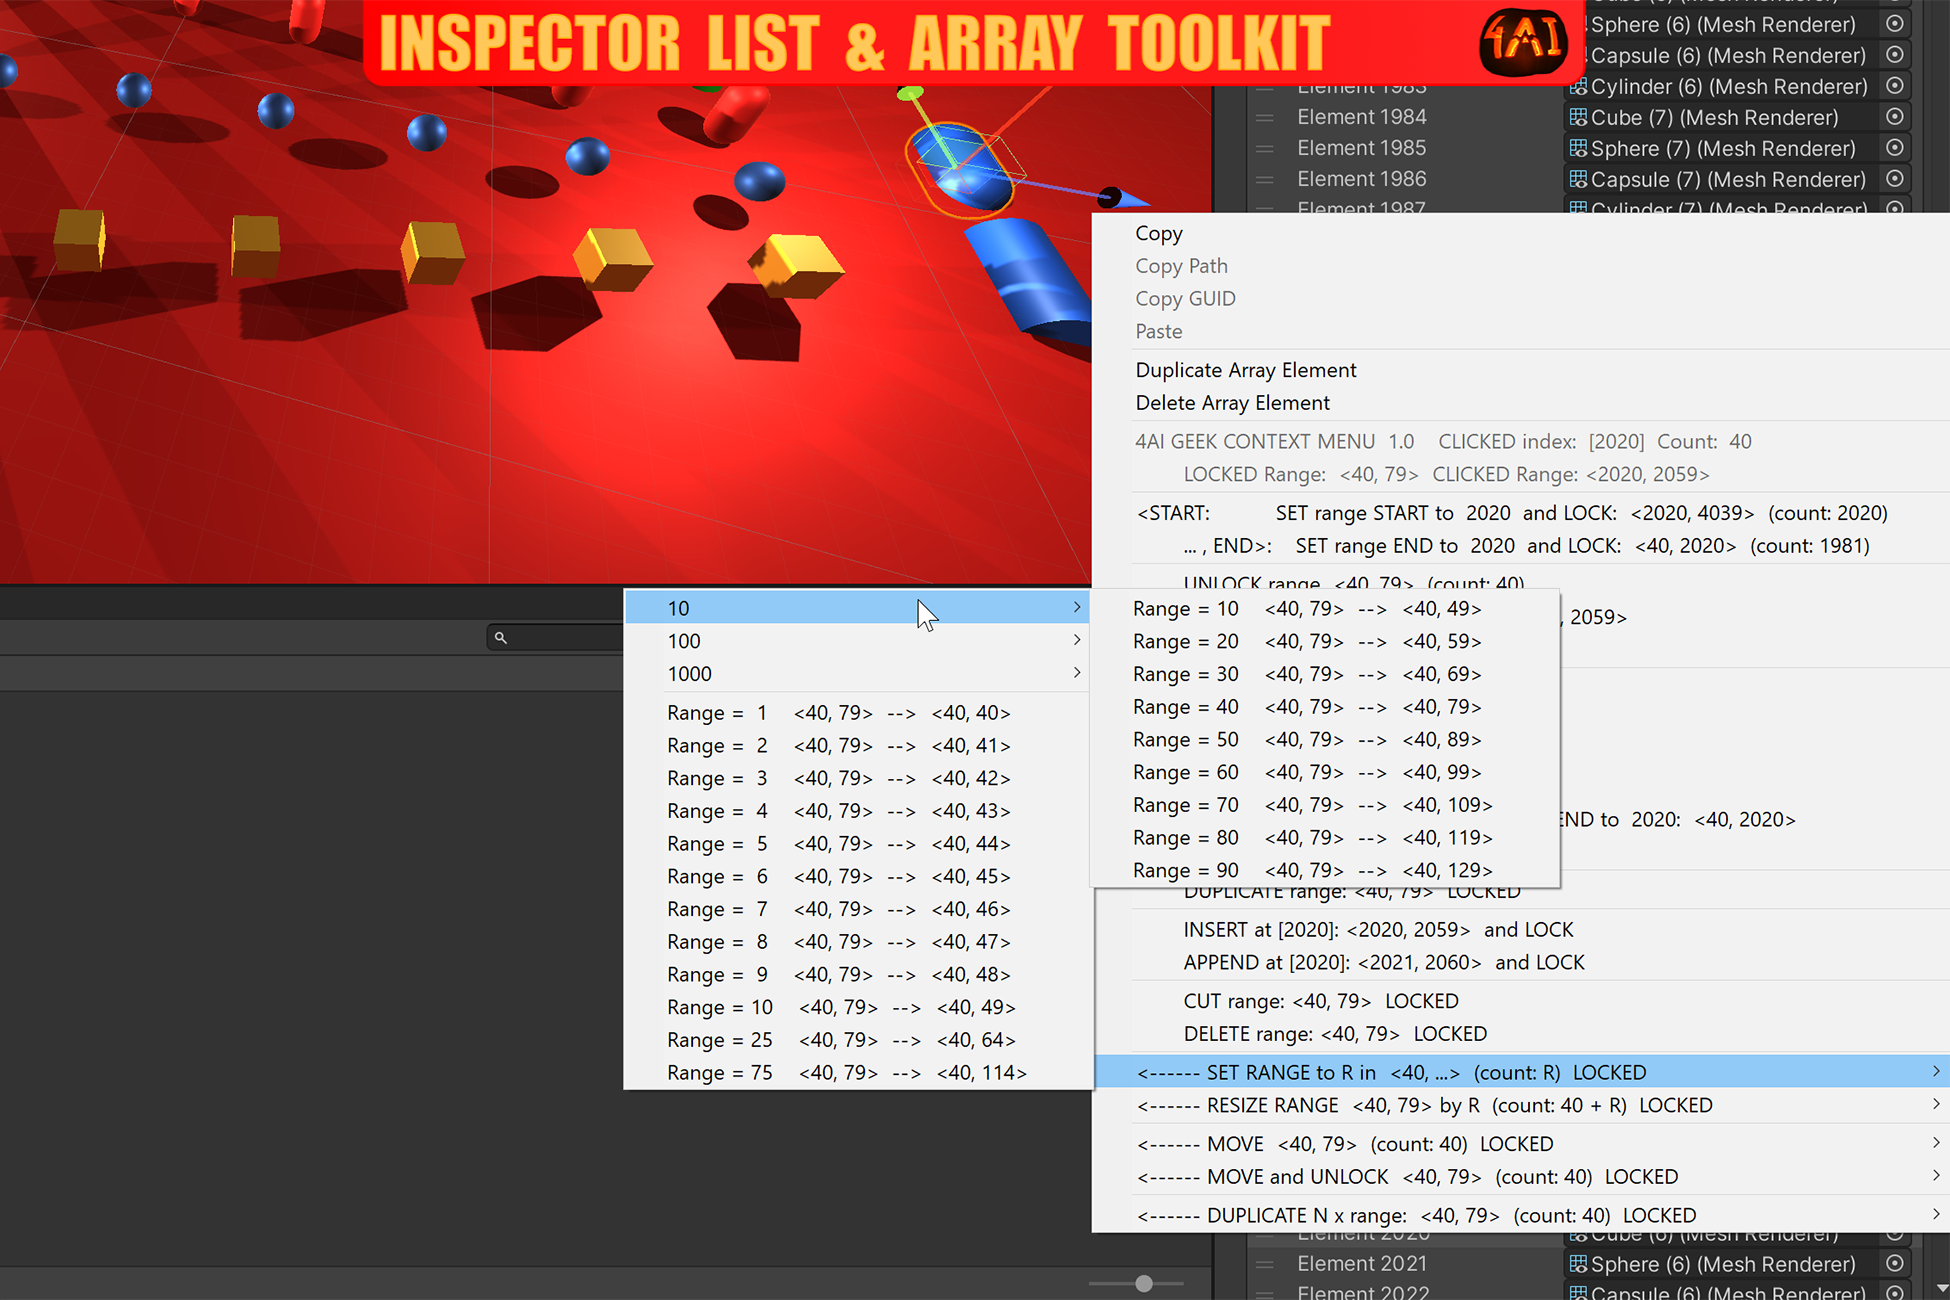 inspector-list-array-toolkit-11.png